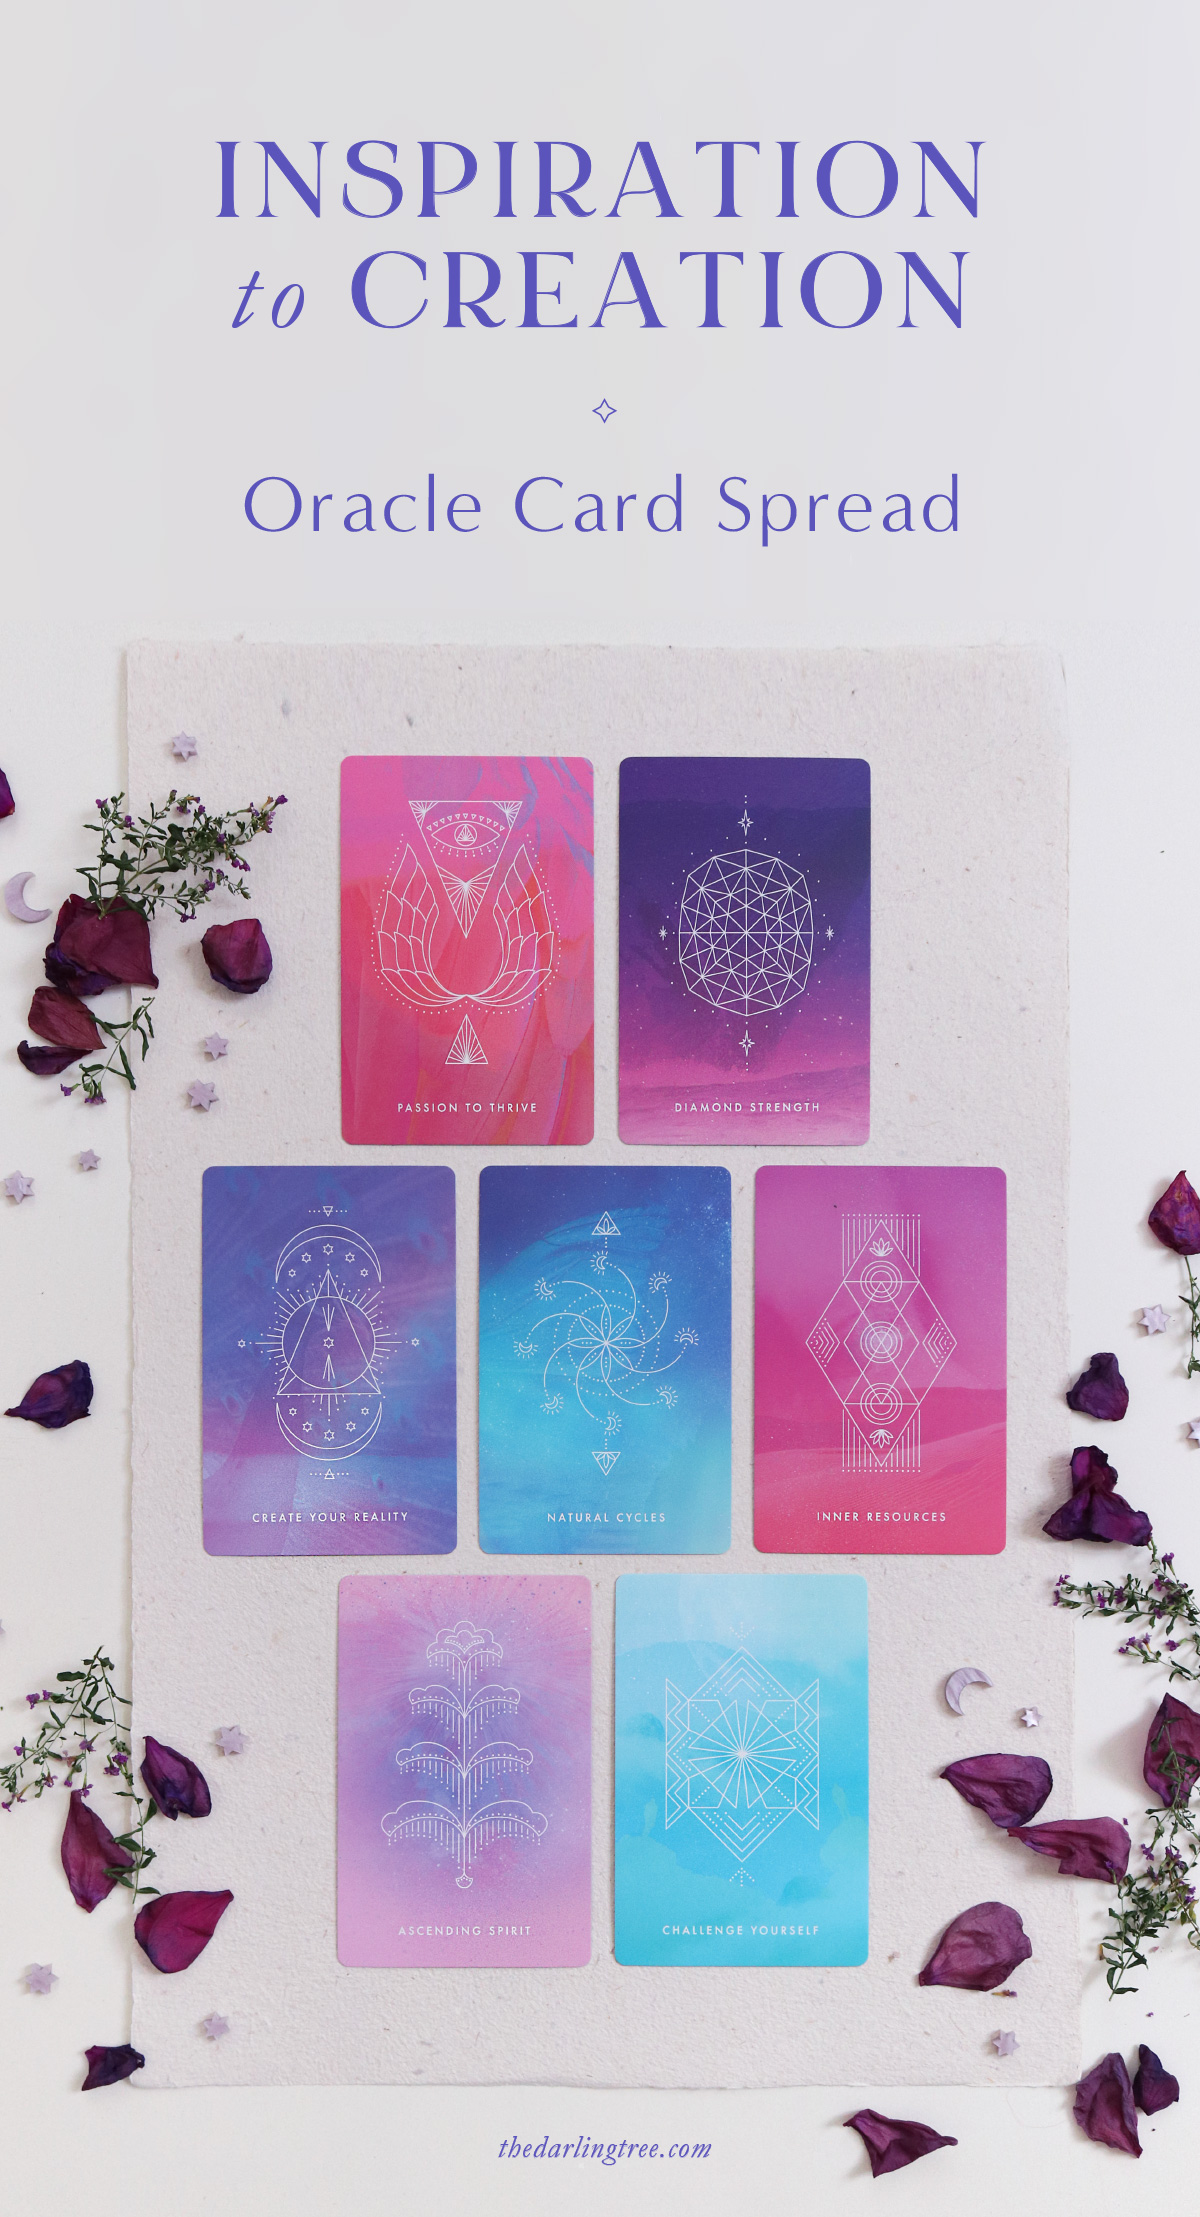 Inspiration to Creation Oracle Card Spread